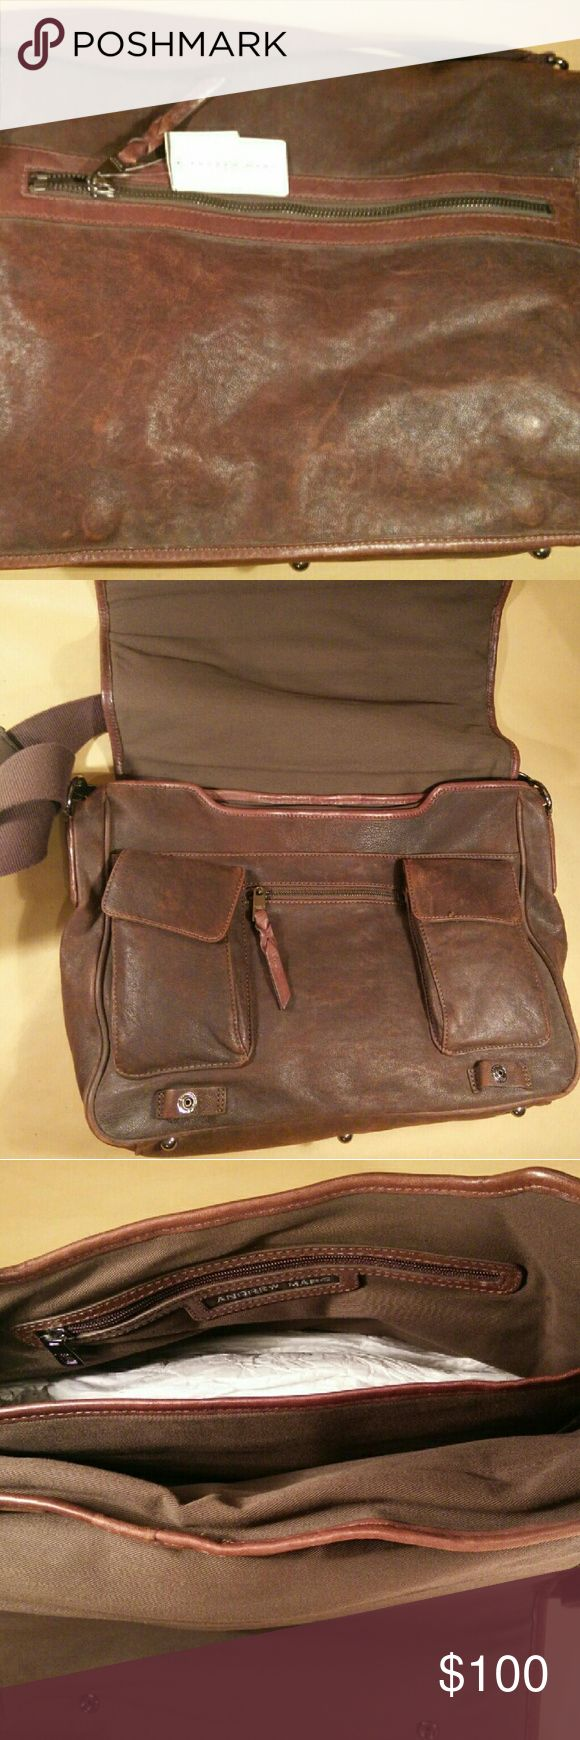 Andrew Marc Andrew Marc brown leather laptop bag Andrew Marc Bags Laptop Bags